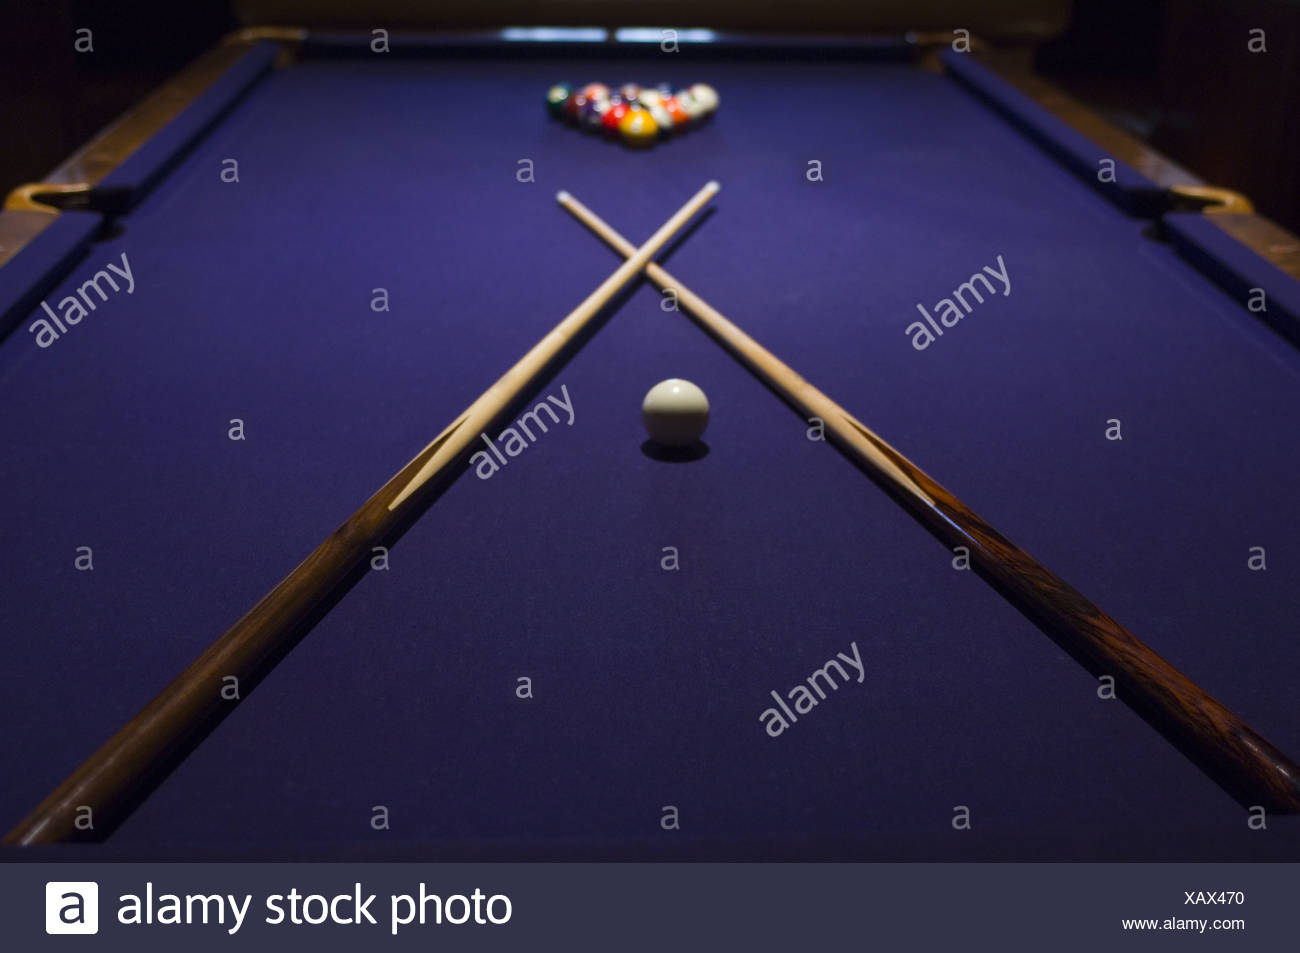 Close-up of pool sticks crossed over on a pool table - Stock Image